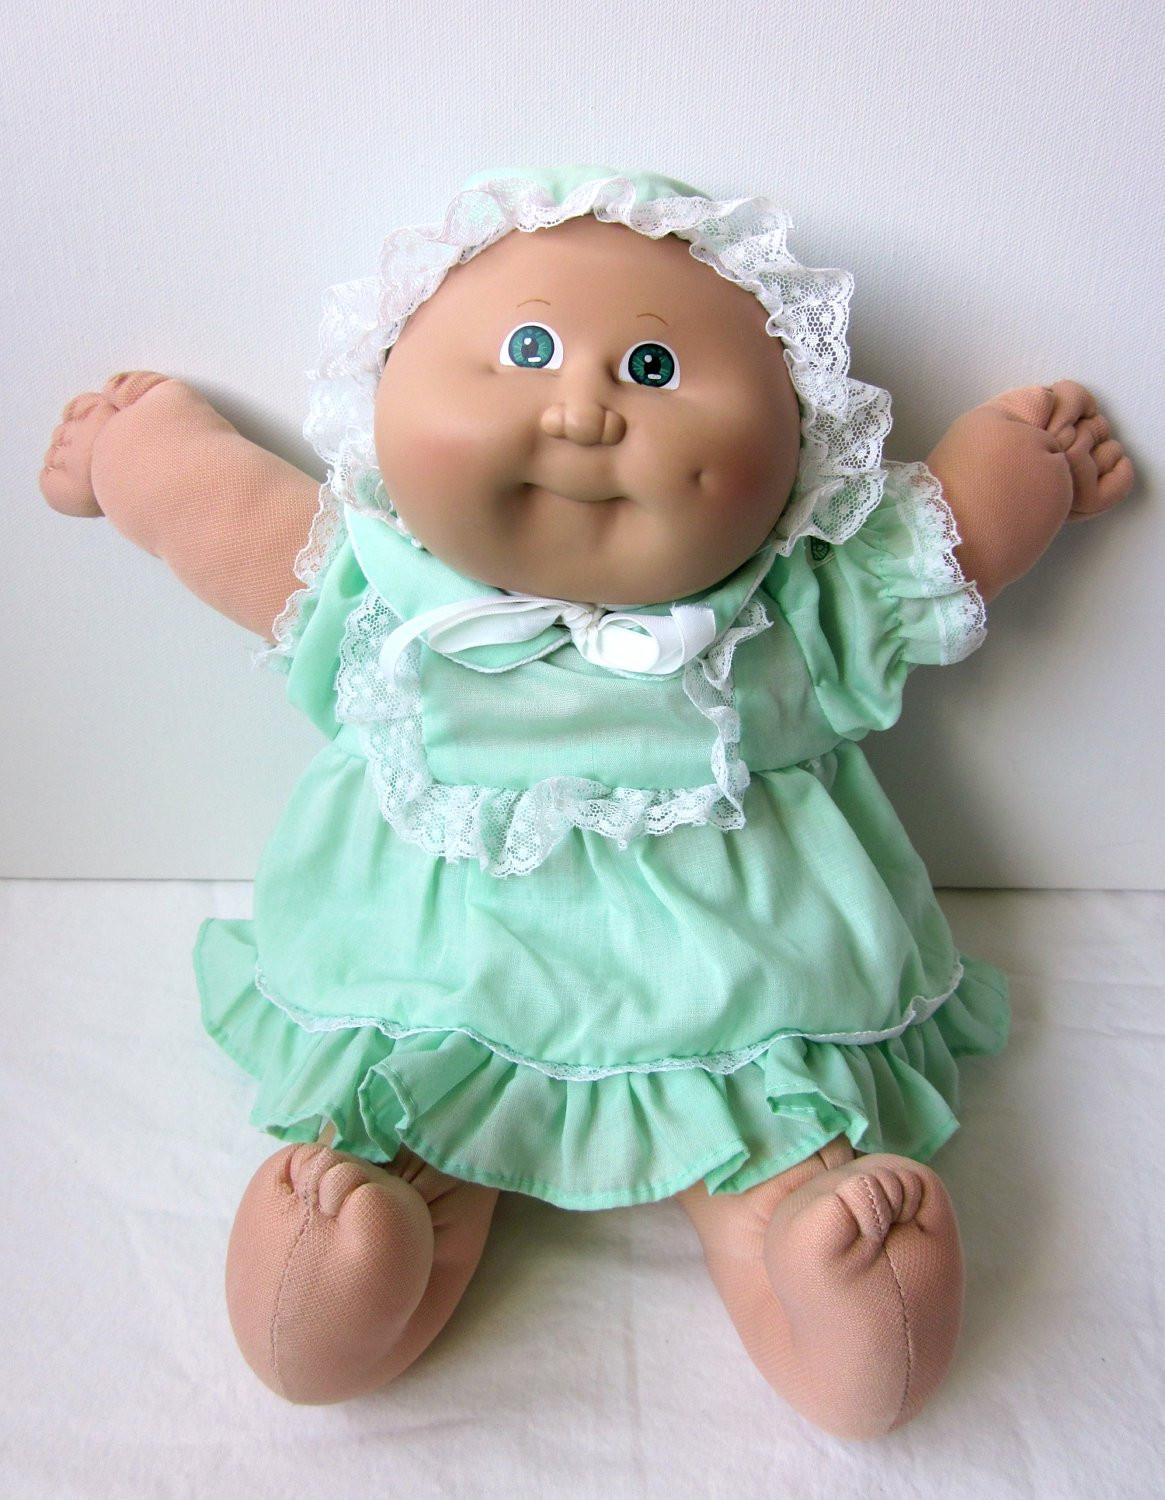 Vintage Cabbage Patch Dolls New Vintage Cabbage Patch Kid Preemie Doll Blond Green Eyes Of Amazing 43 Models Vintage Cabbage Patch Dolls